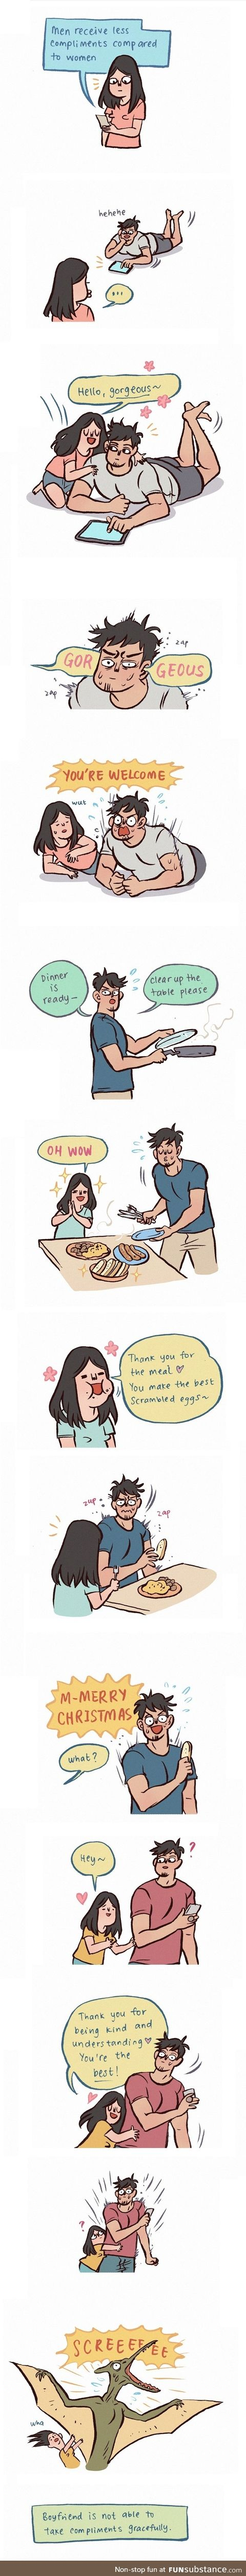 compliment your bf